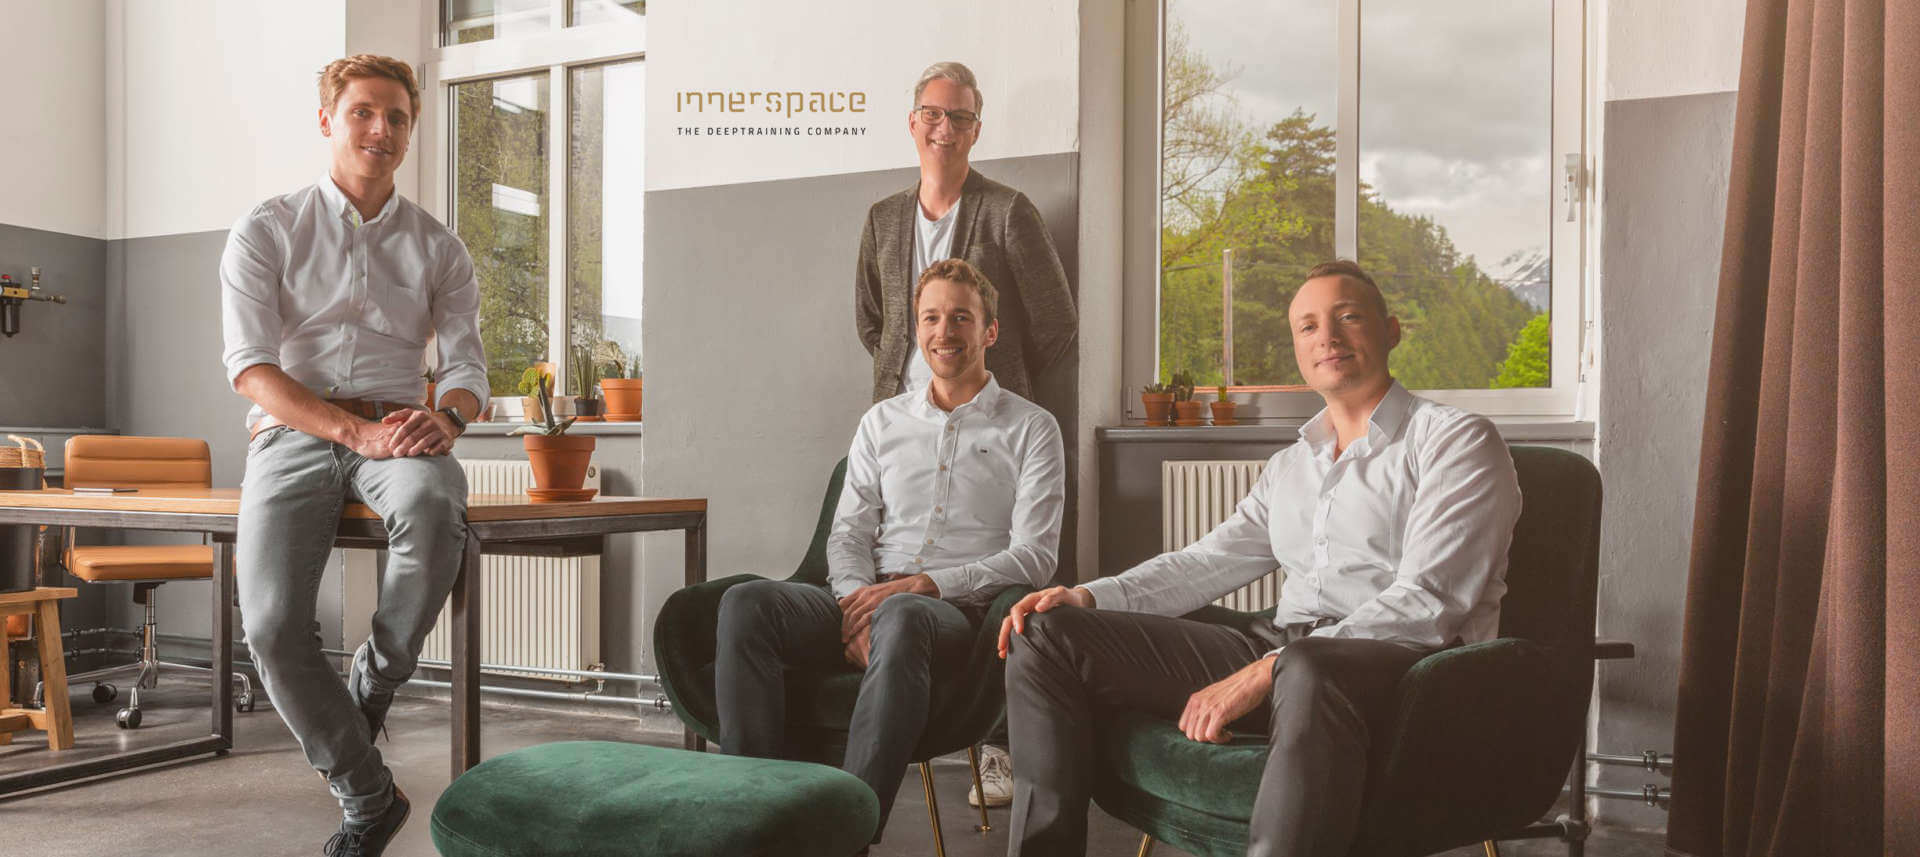 Team Innerspace - HTGF Investment